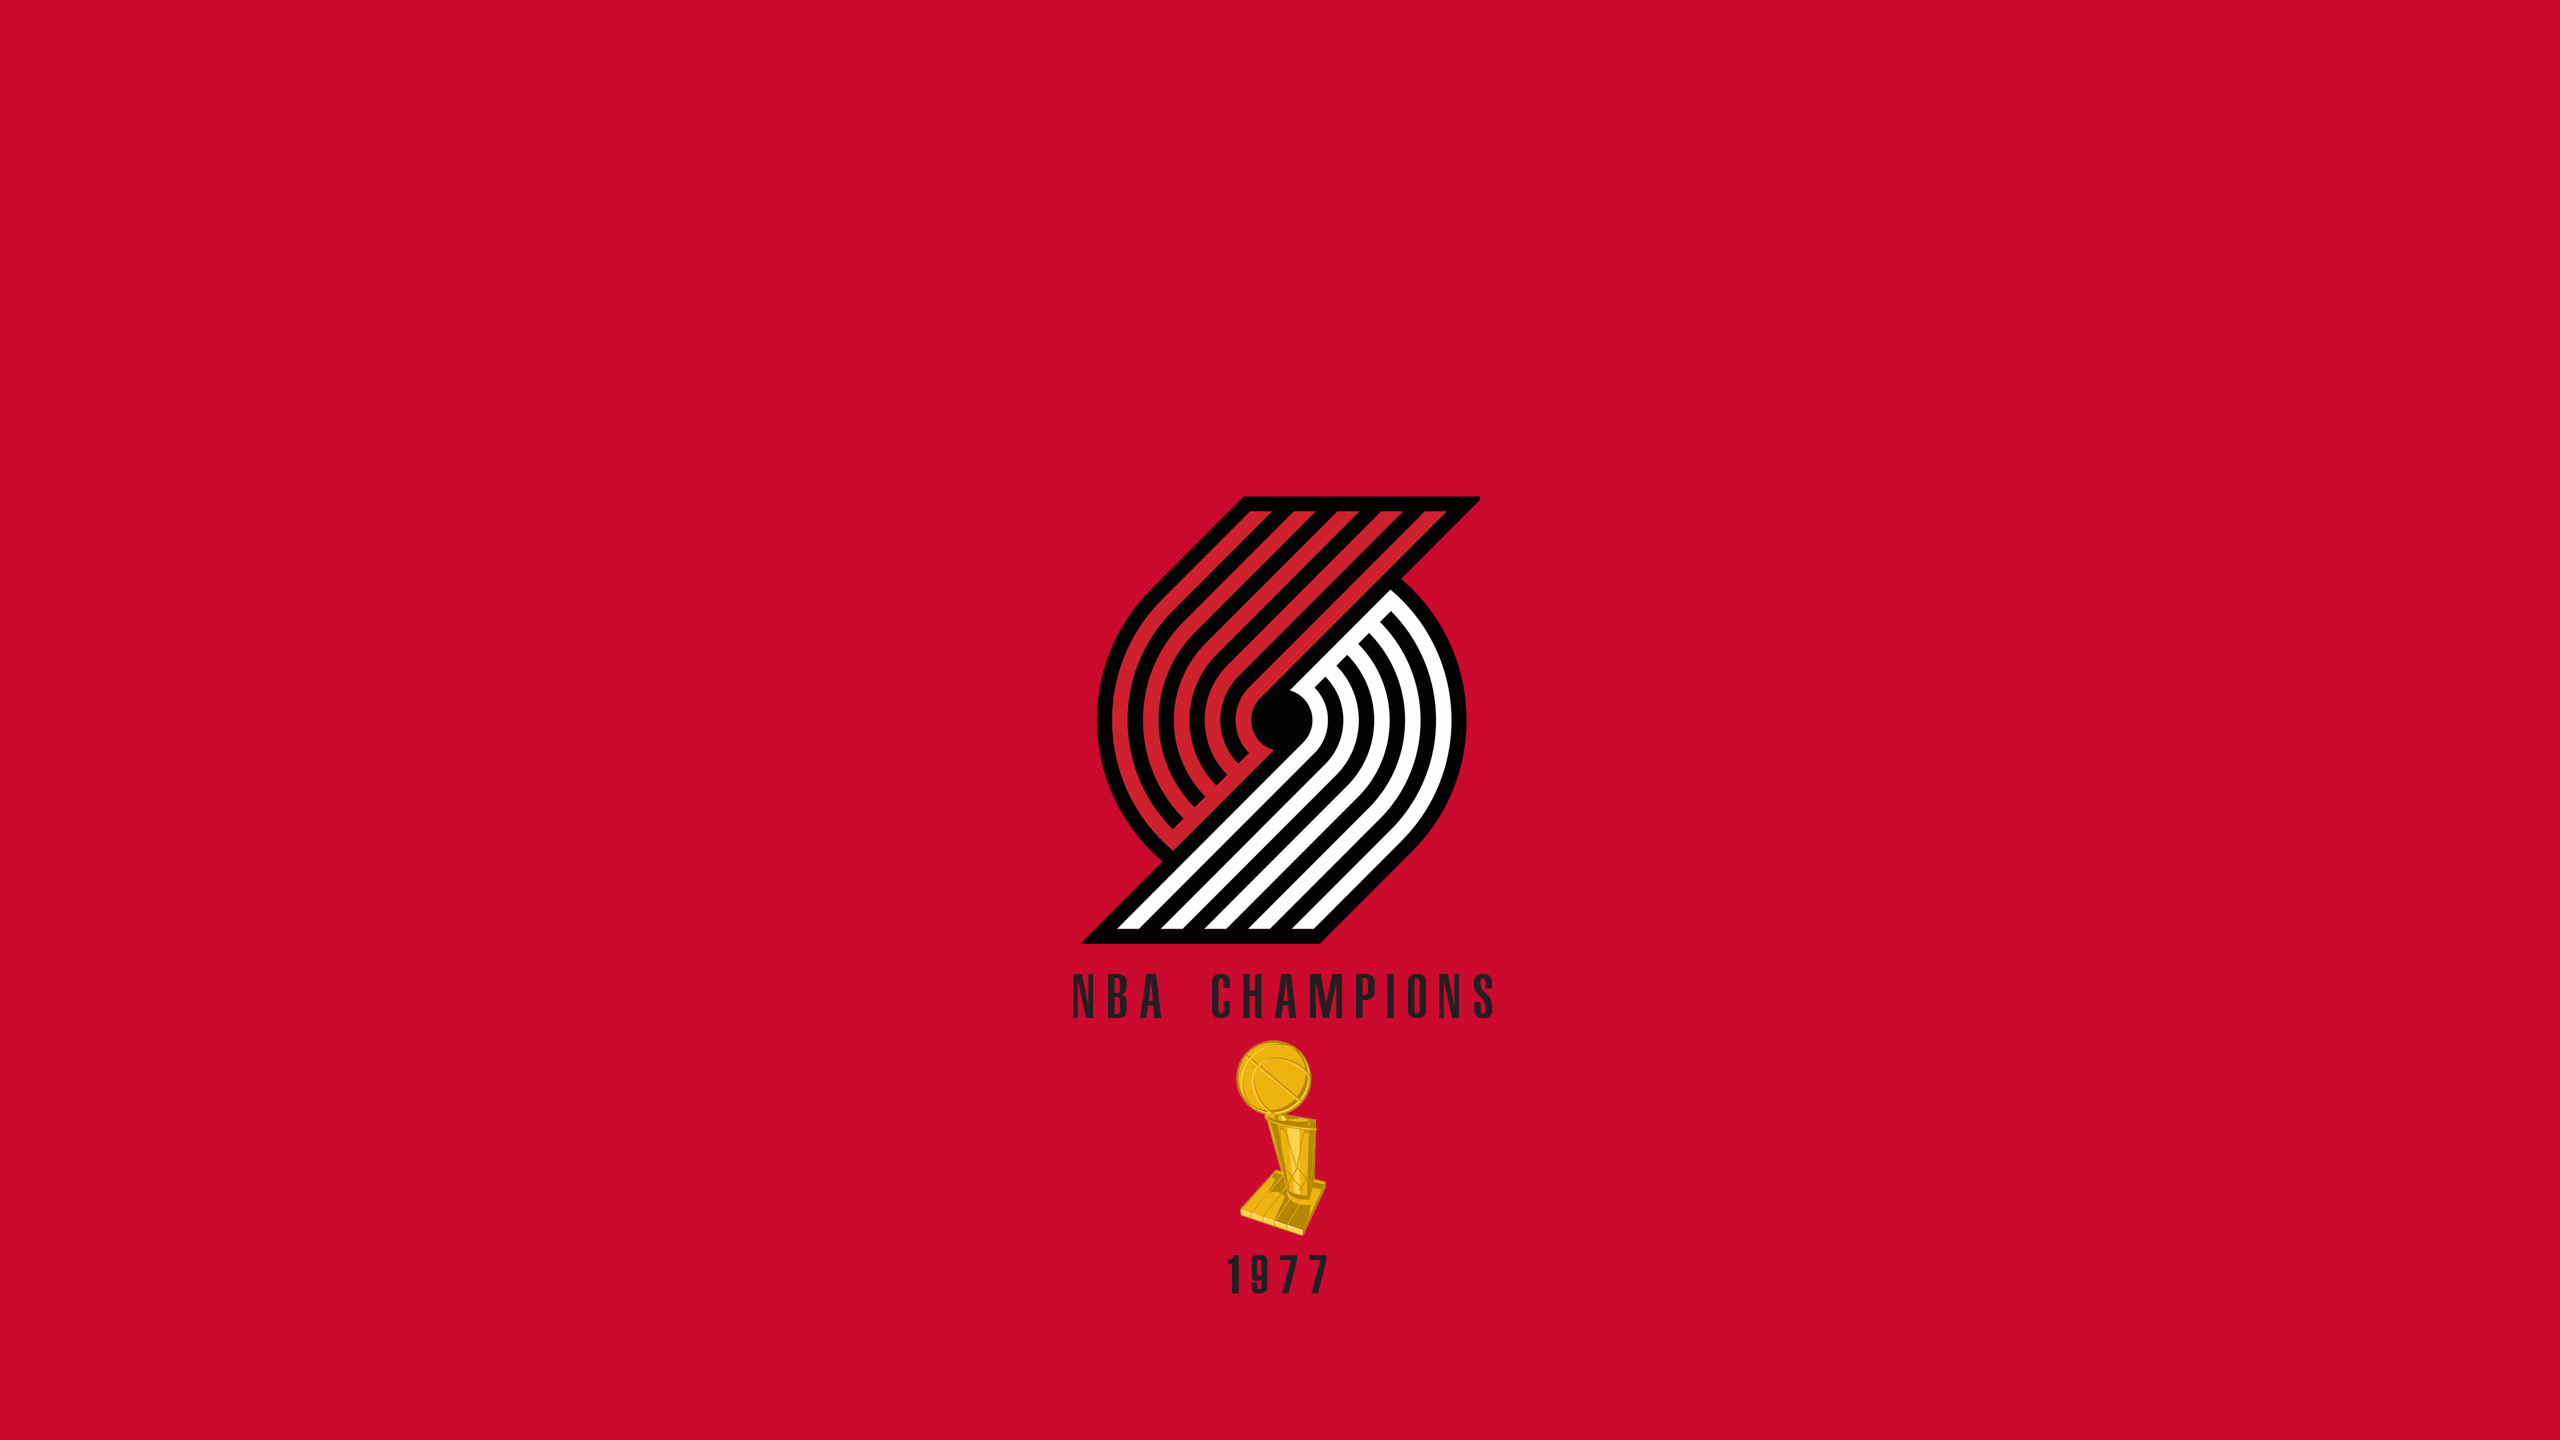 Portland Trailblazers - NBA Champs